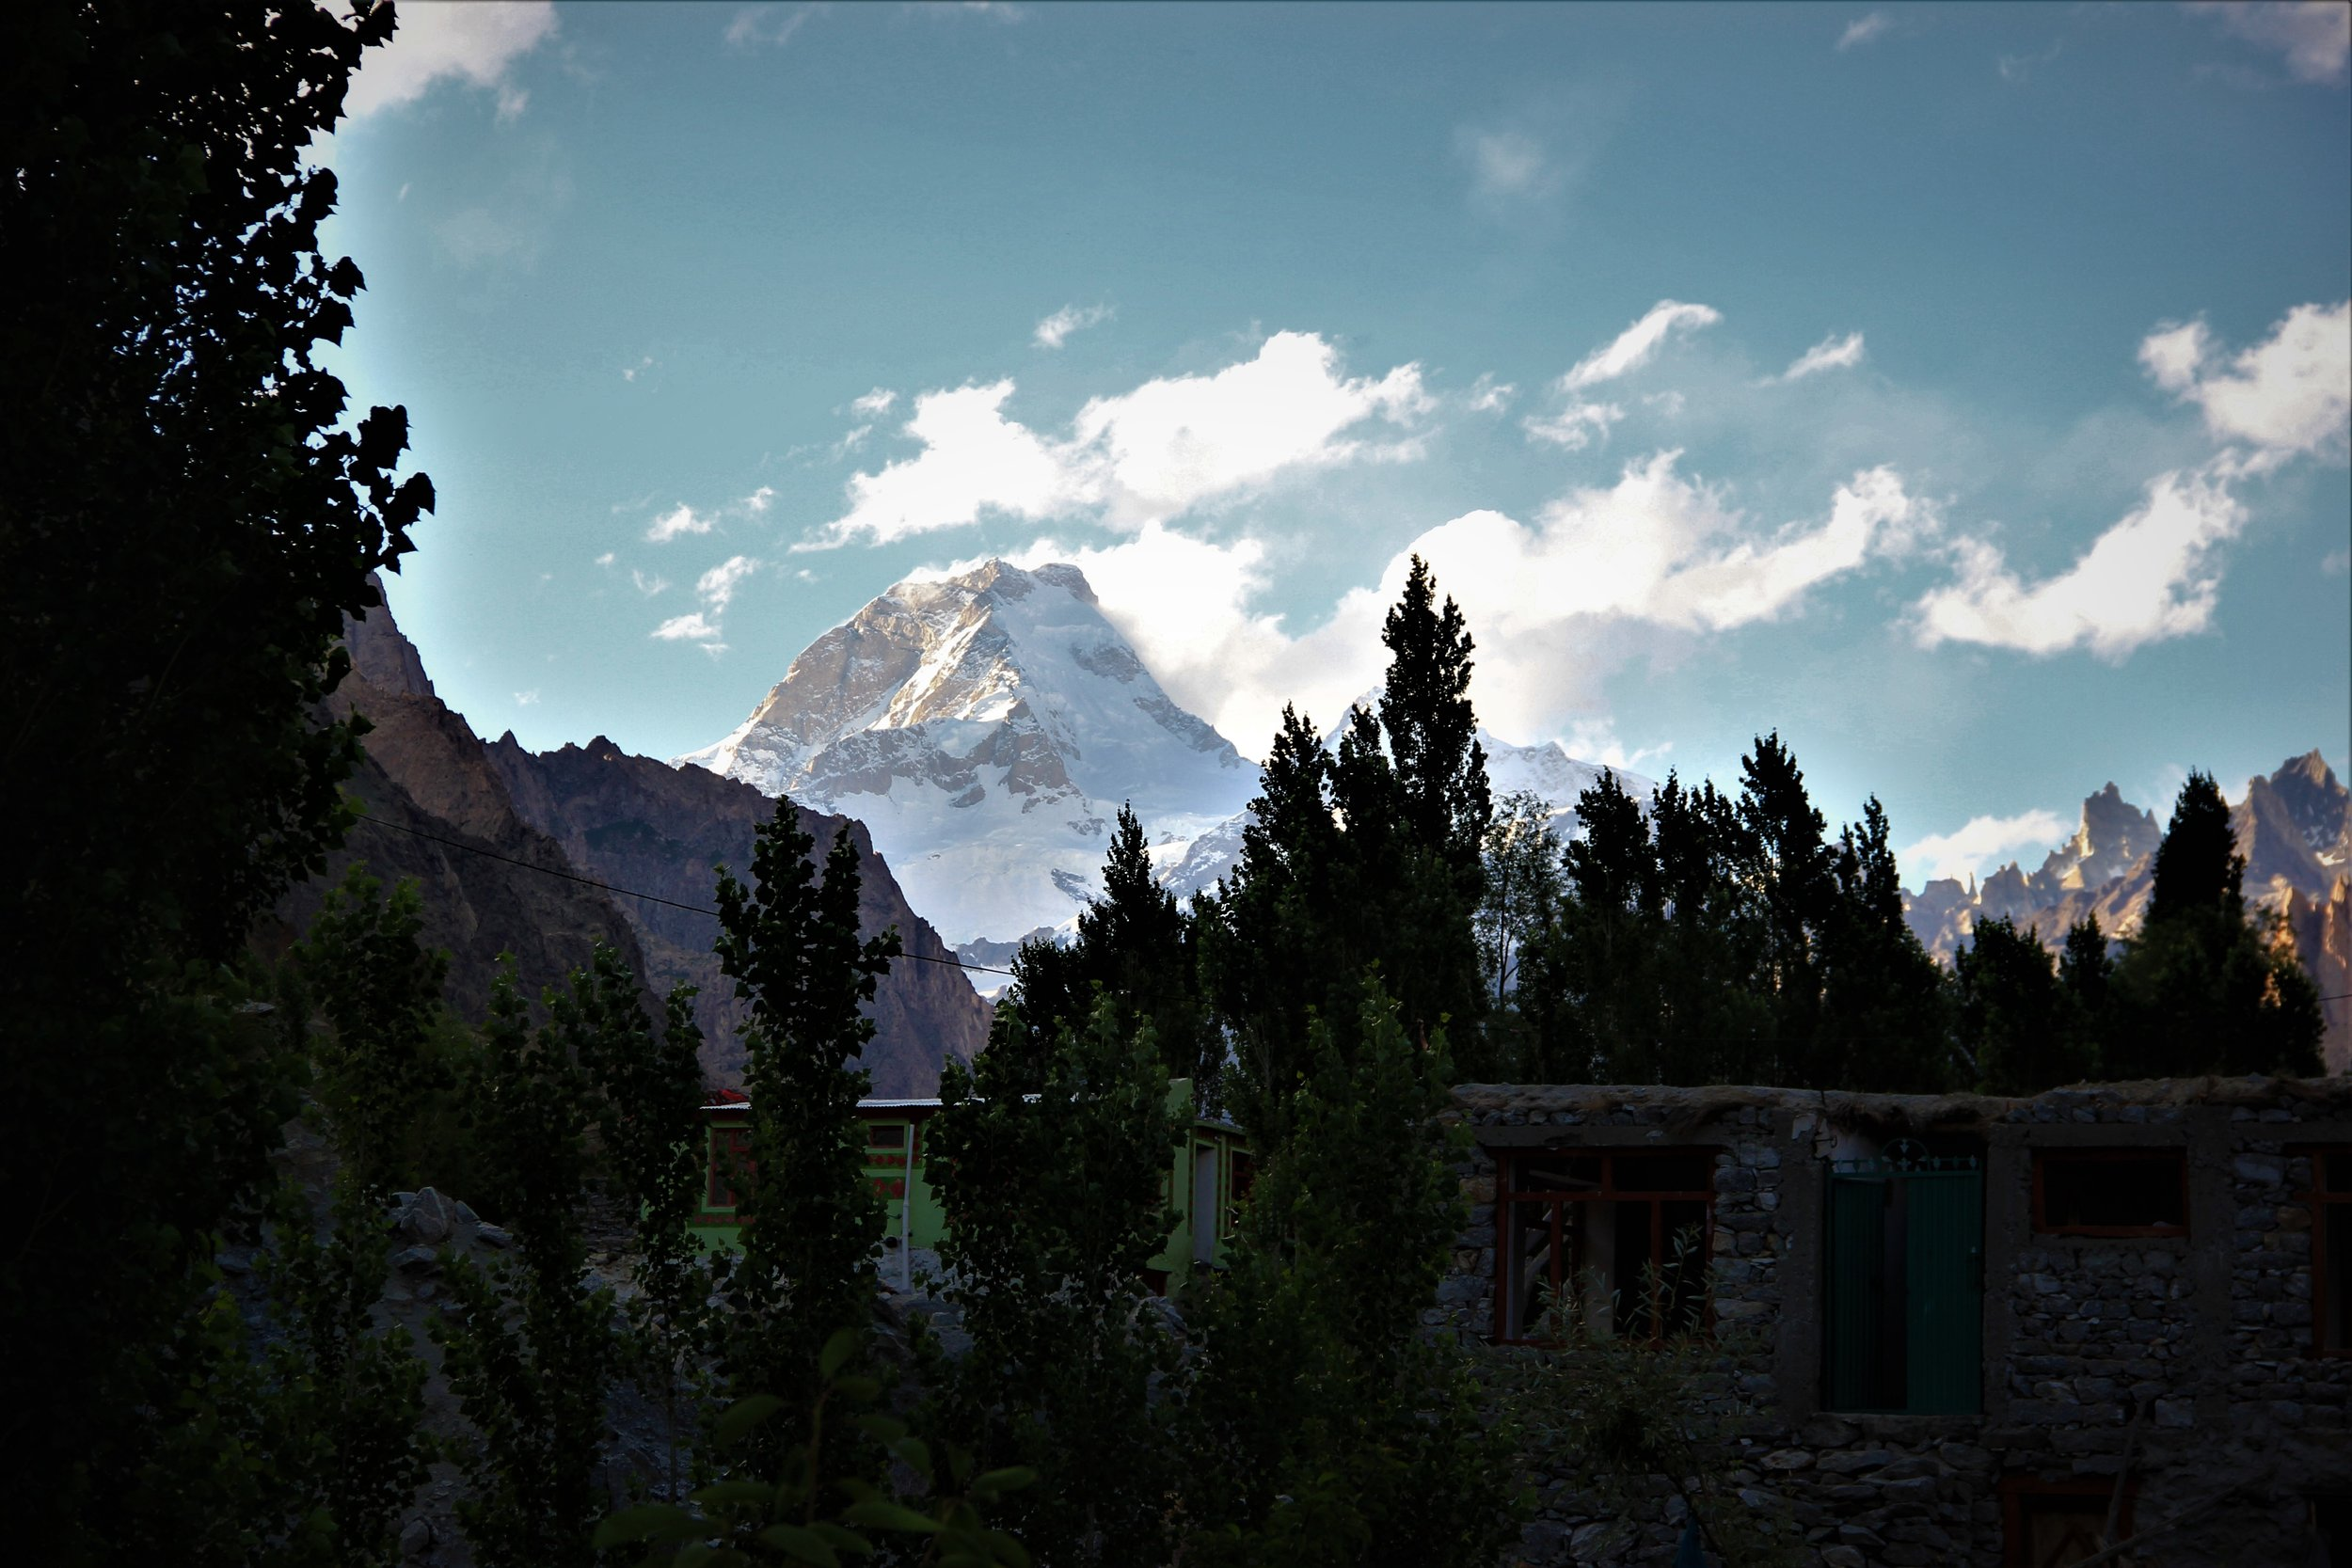 the village of Kandi in Hushe valley - Masherbrum dominates the Northern skyline.